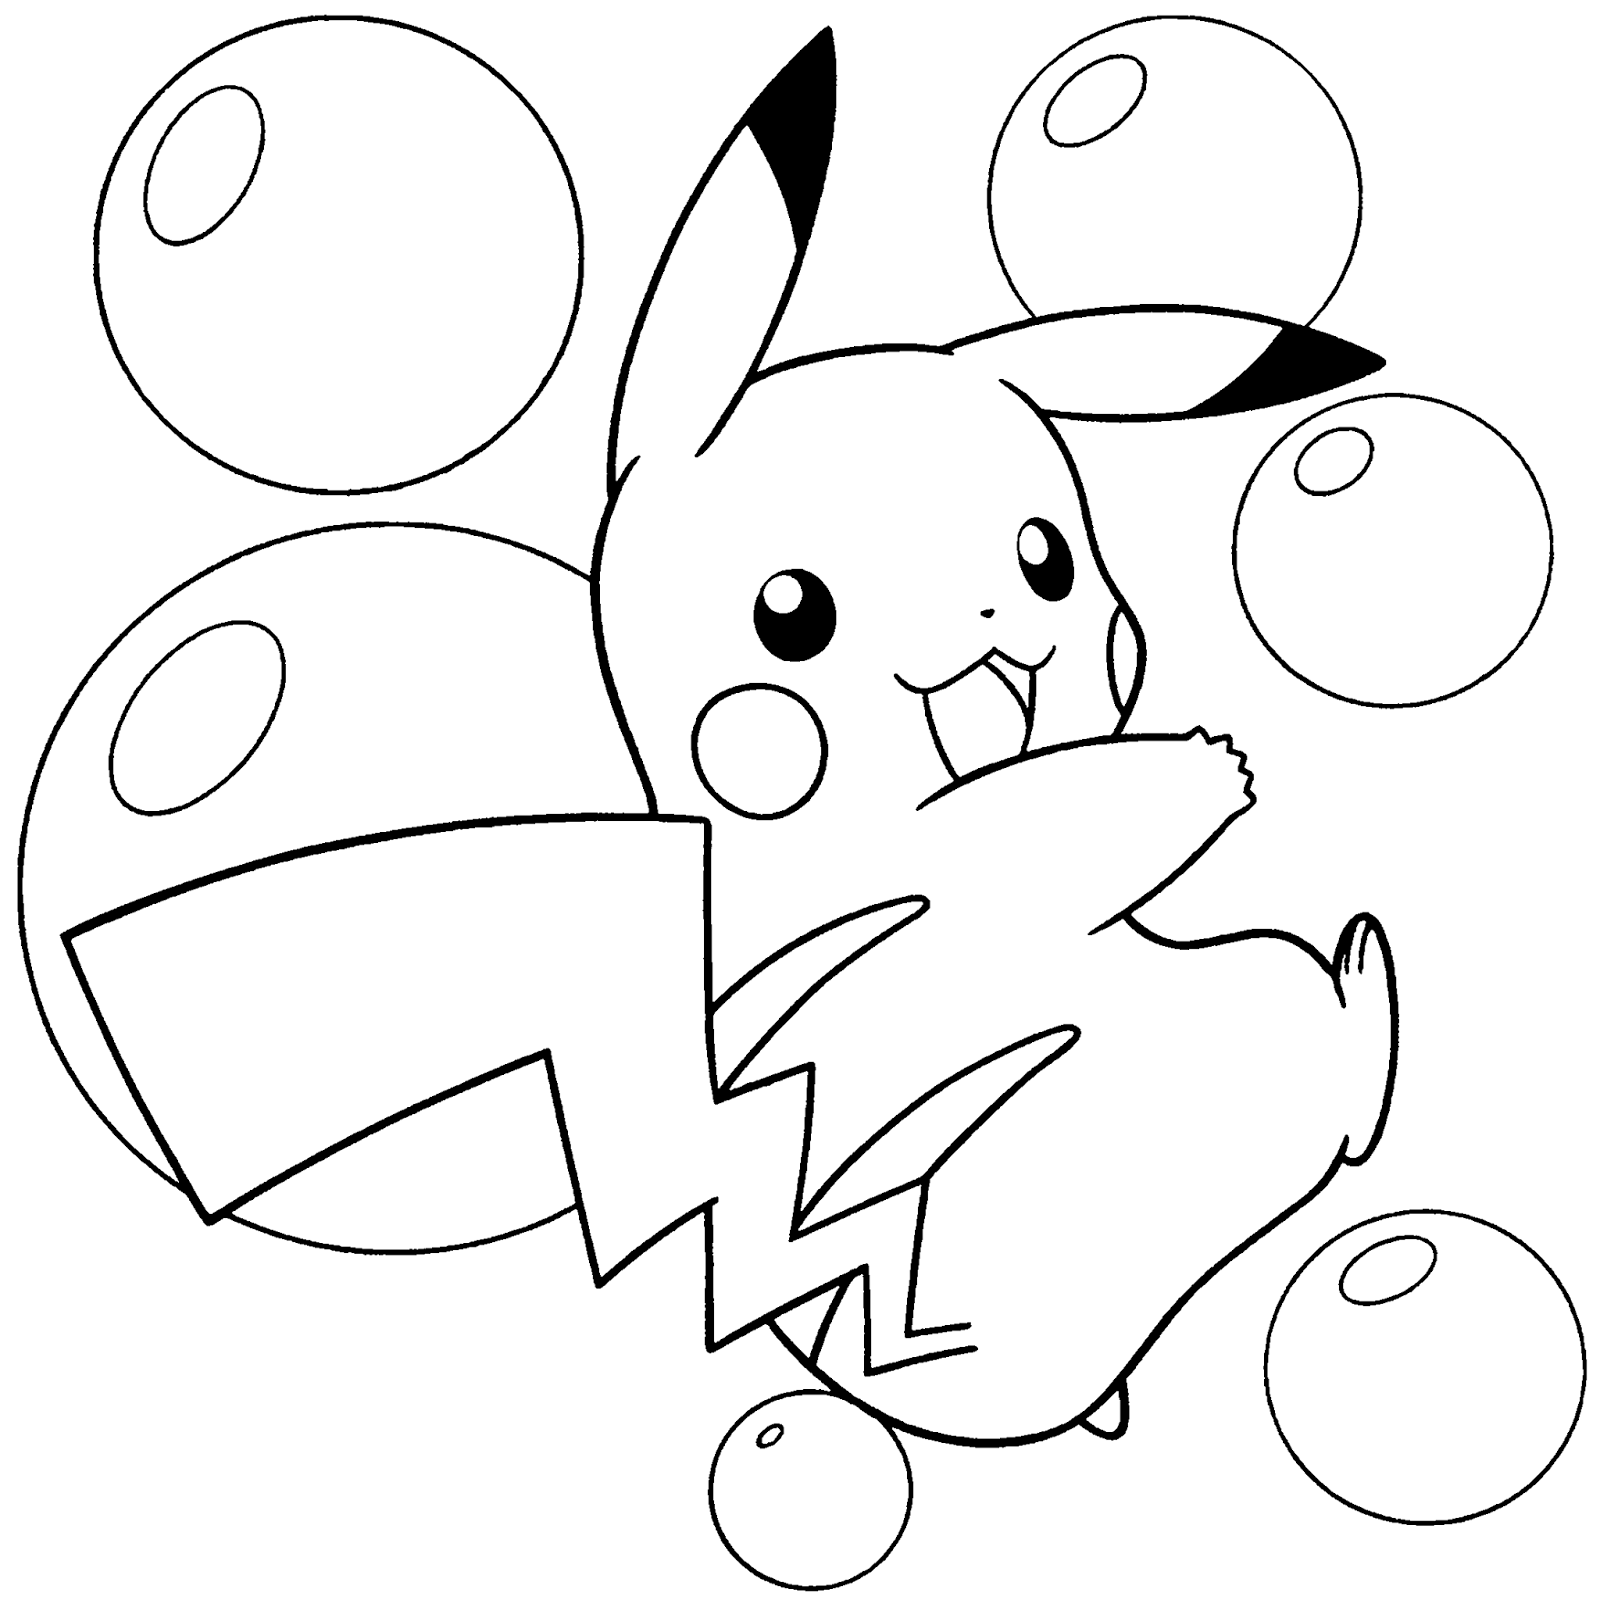 pokemon coloring pages for kids printable pokemon coloring pages for kids for coloring kids printable pokemon pages